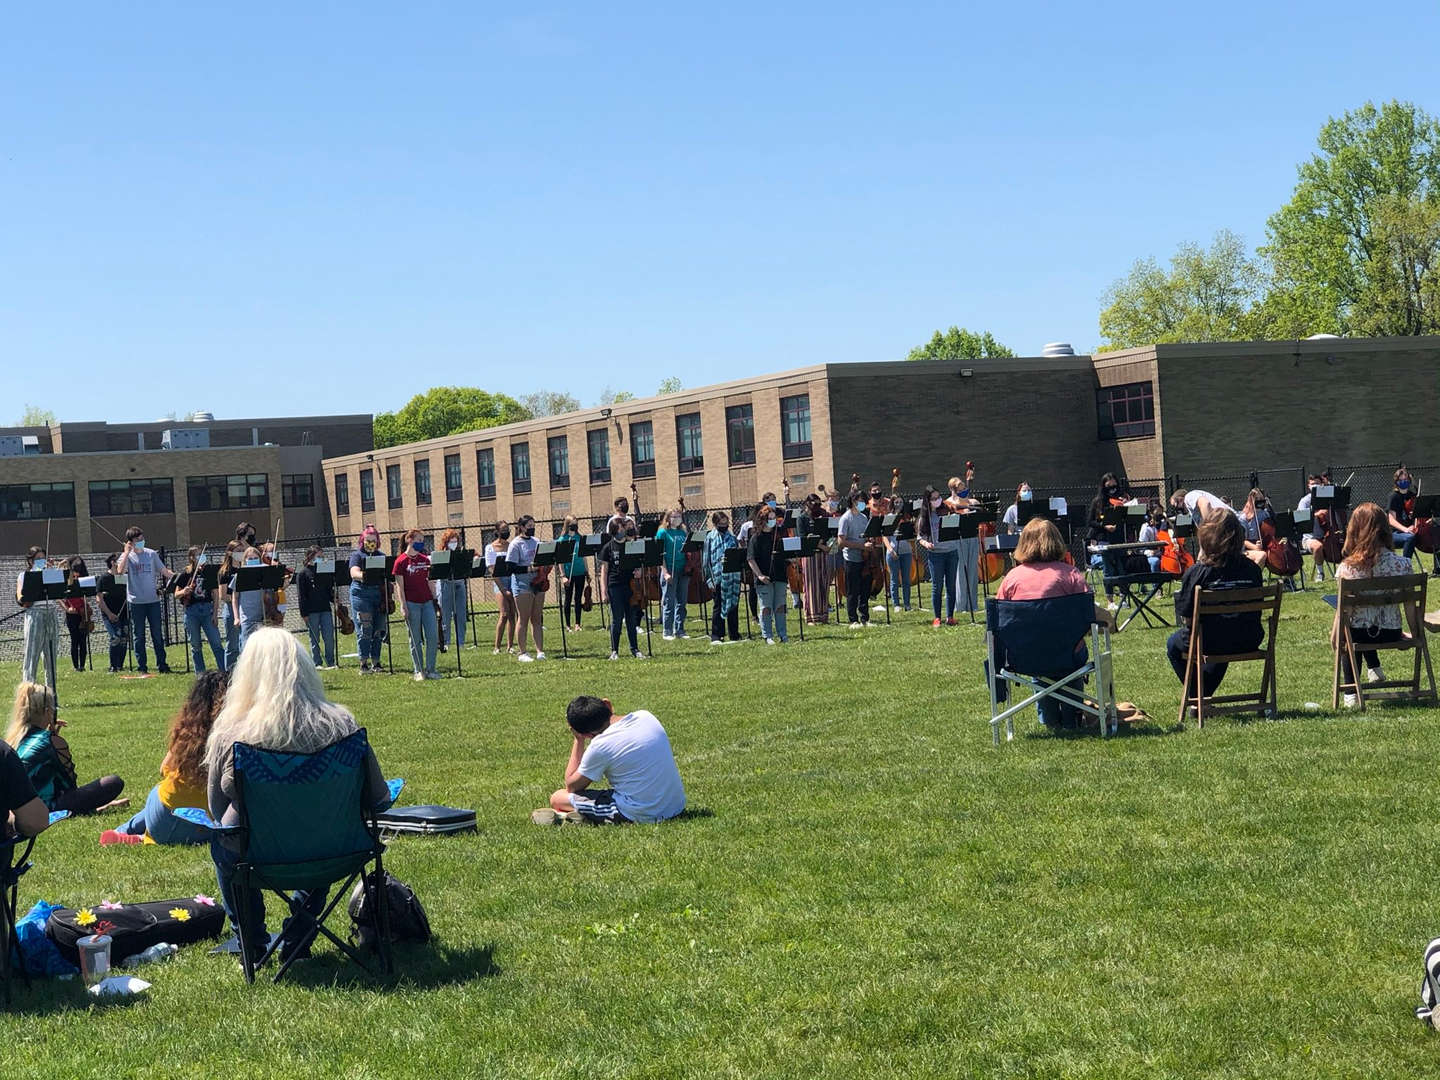 Student-musicians practice during open rehearsal on the field outside.